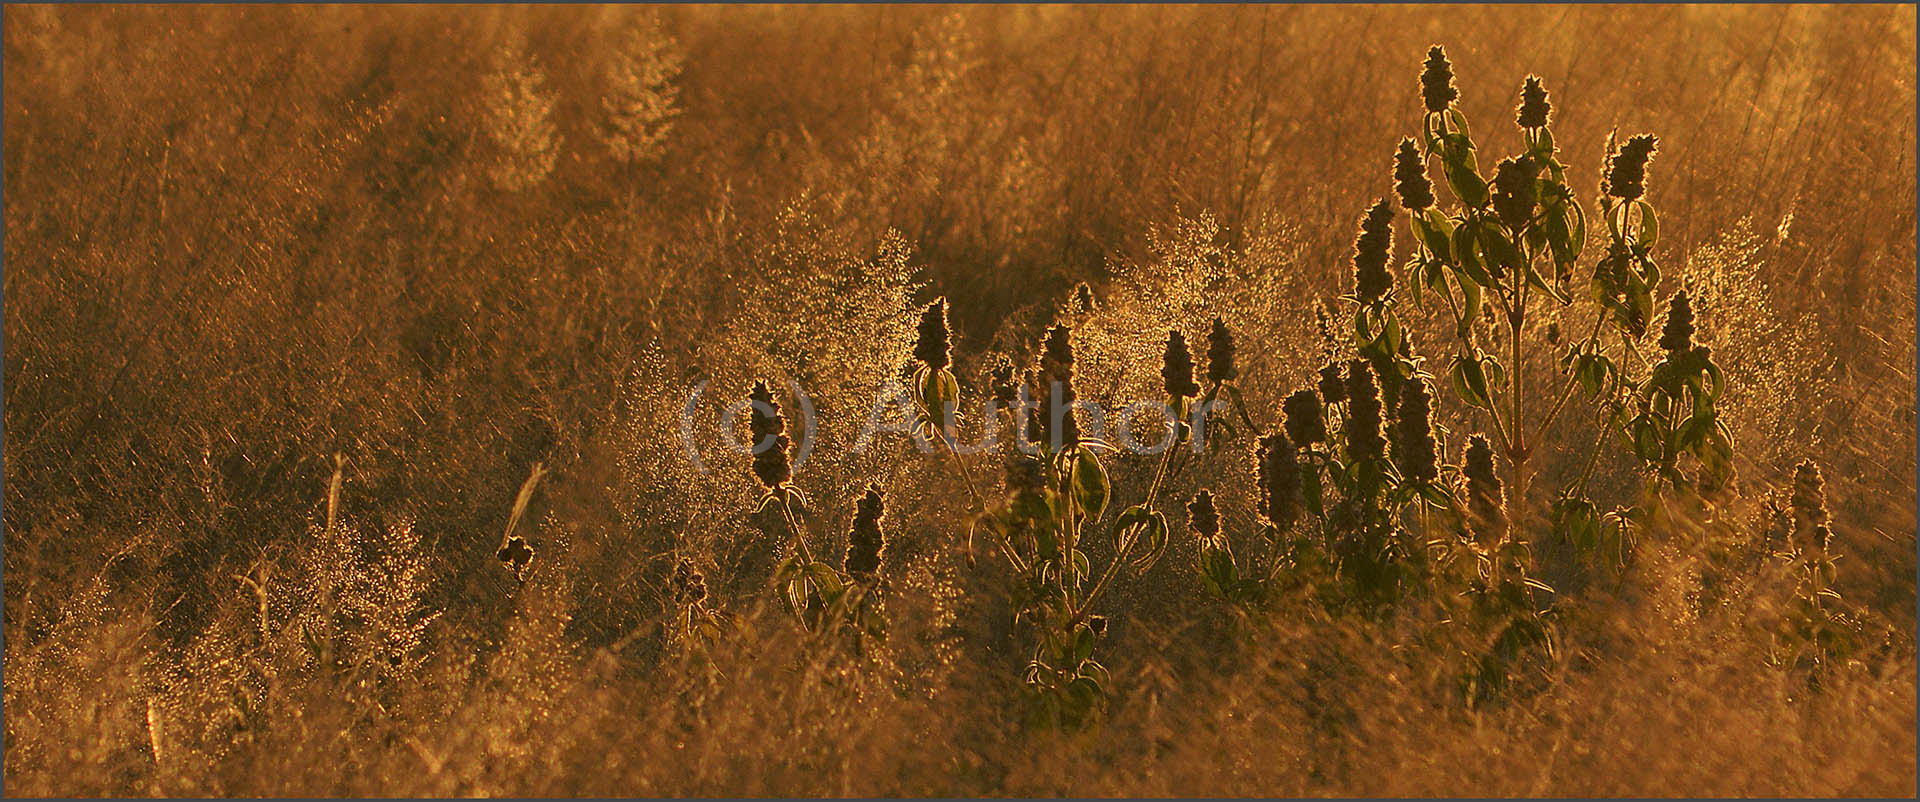 5_NA_grass tapesry_John Coumbias